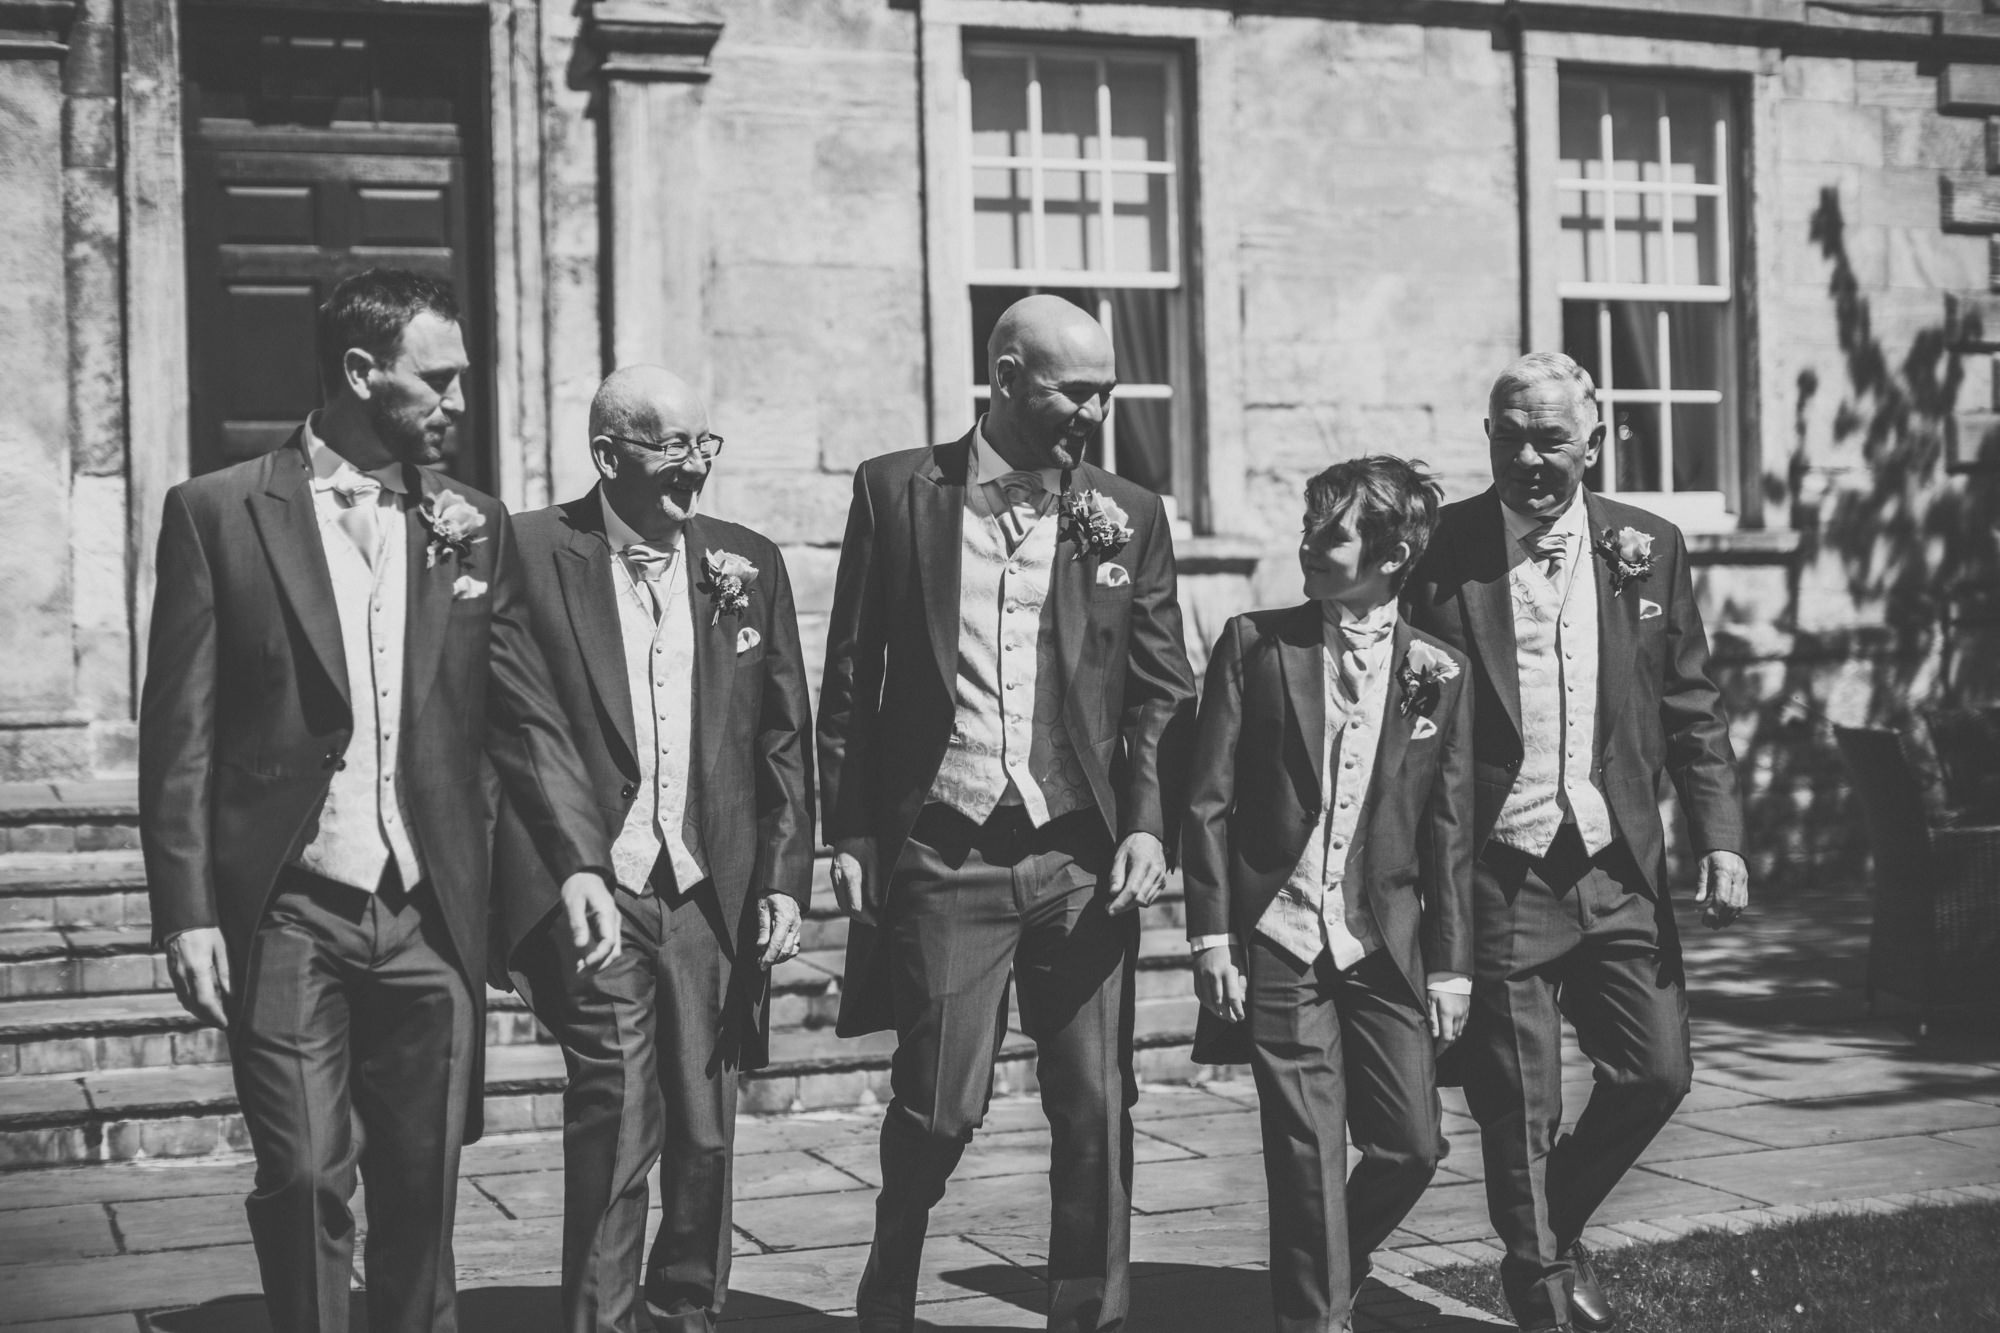 hellaby hall wedding photographers in rotherham, yorkshire-11.jpg